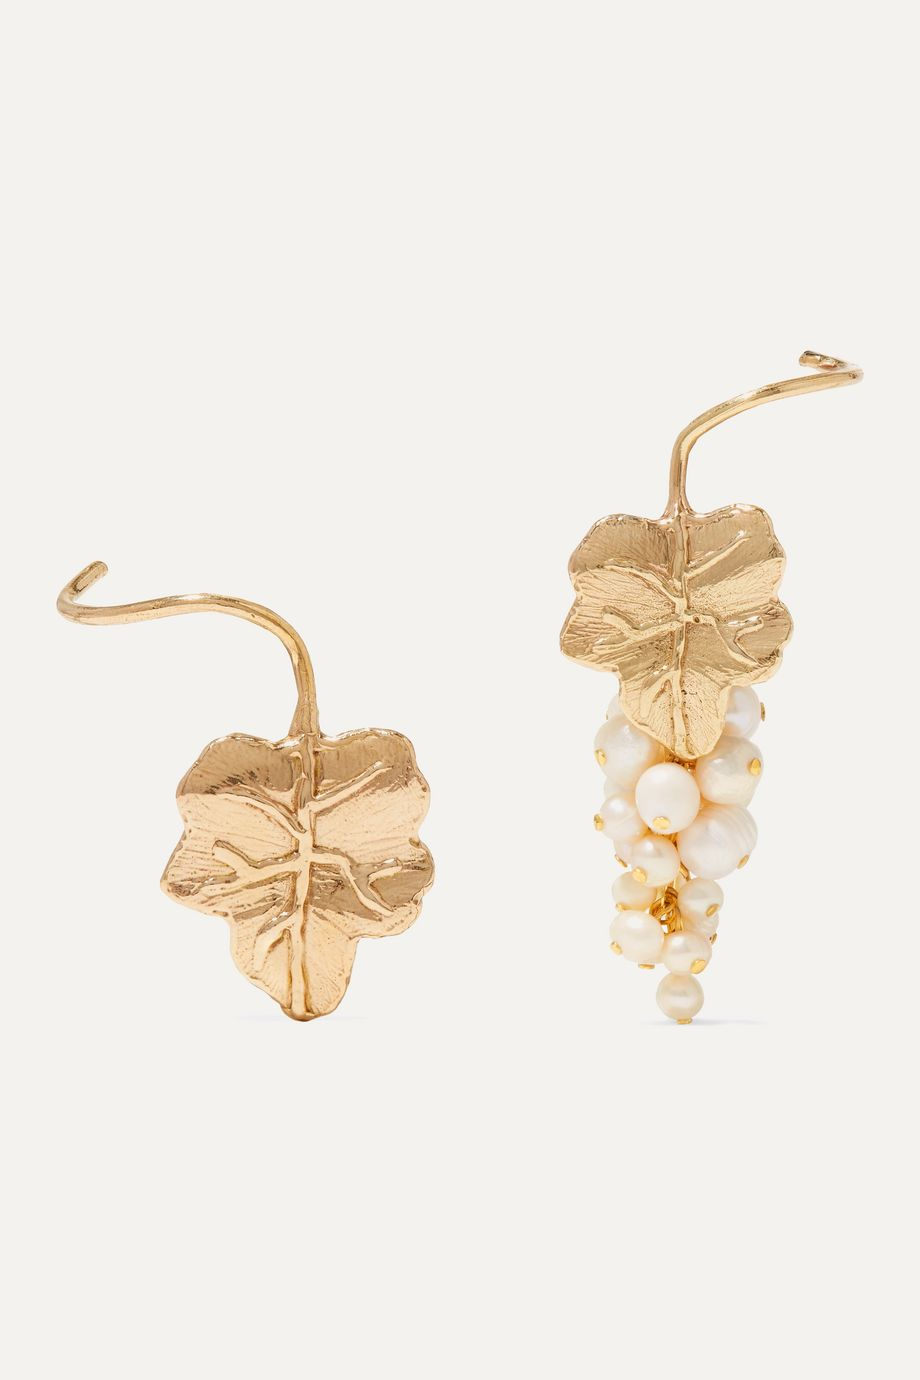 Anita Berisha Grape gold-tone pearl earrings